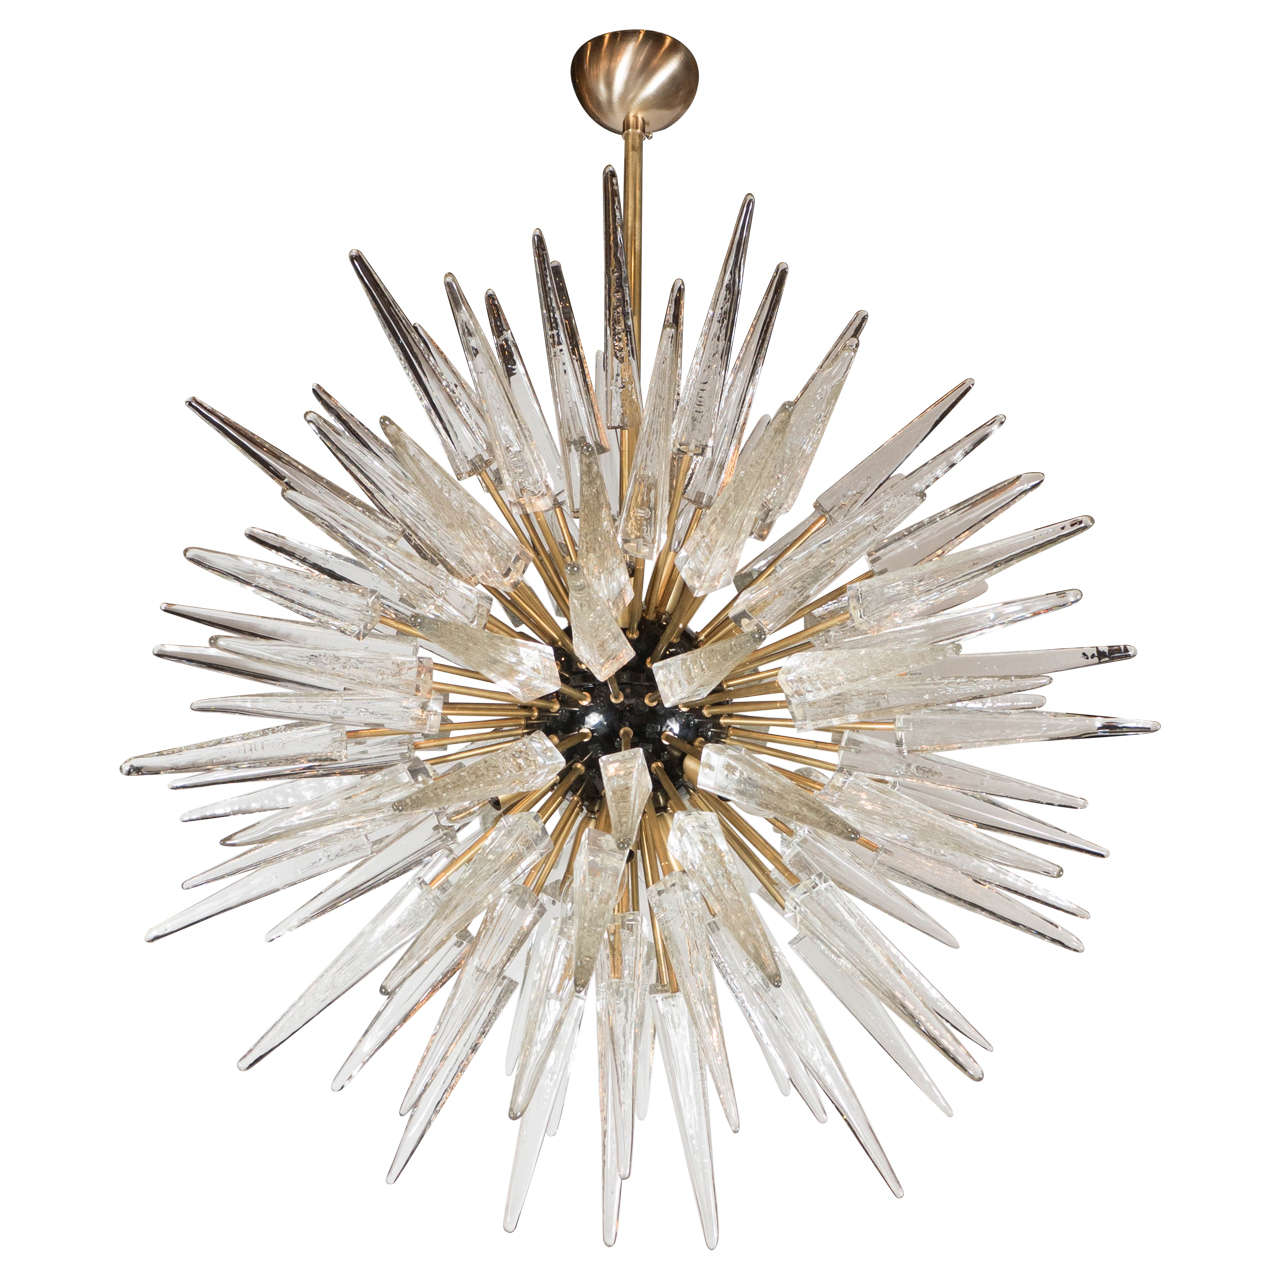 impressive handblown murano glass spiked starburst chandelier . impressive handblown murano glass spiked starburst chandelier at